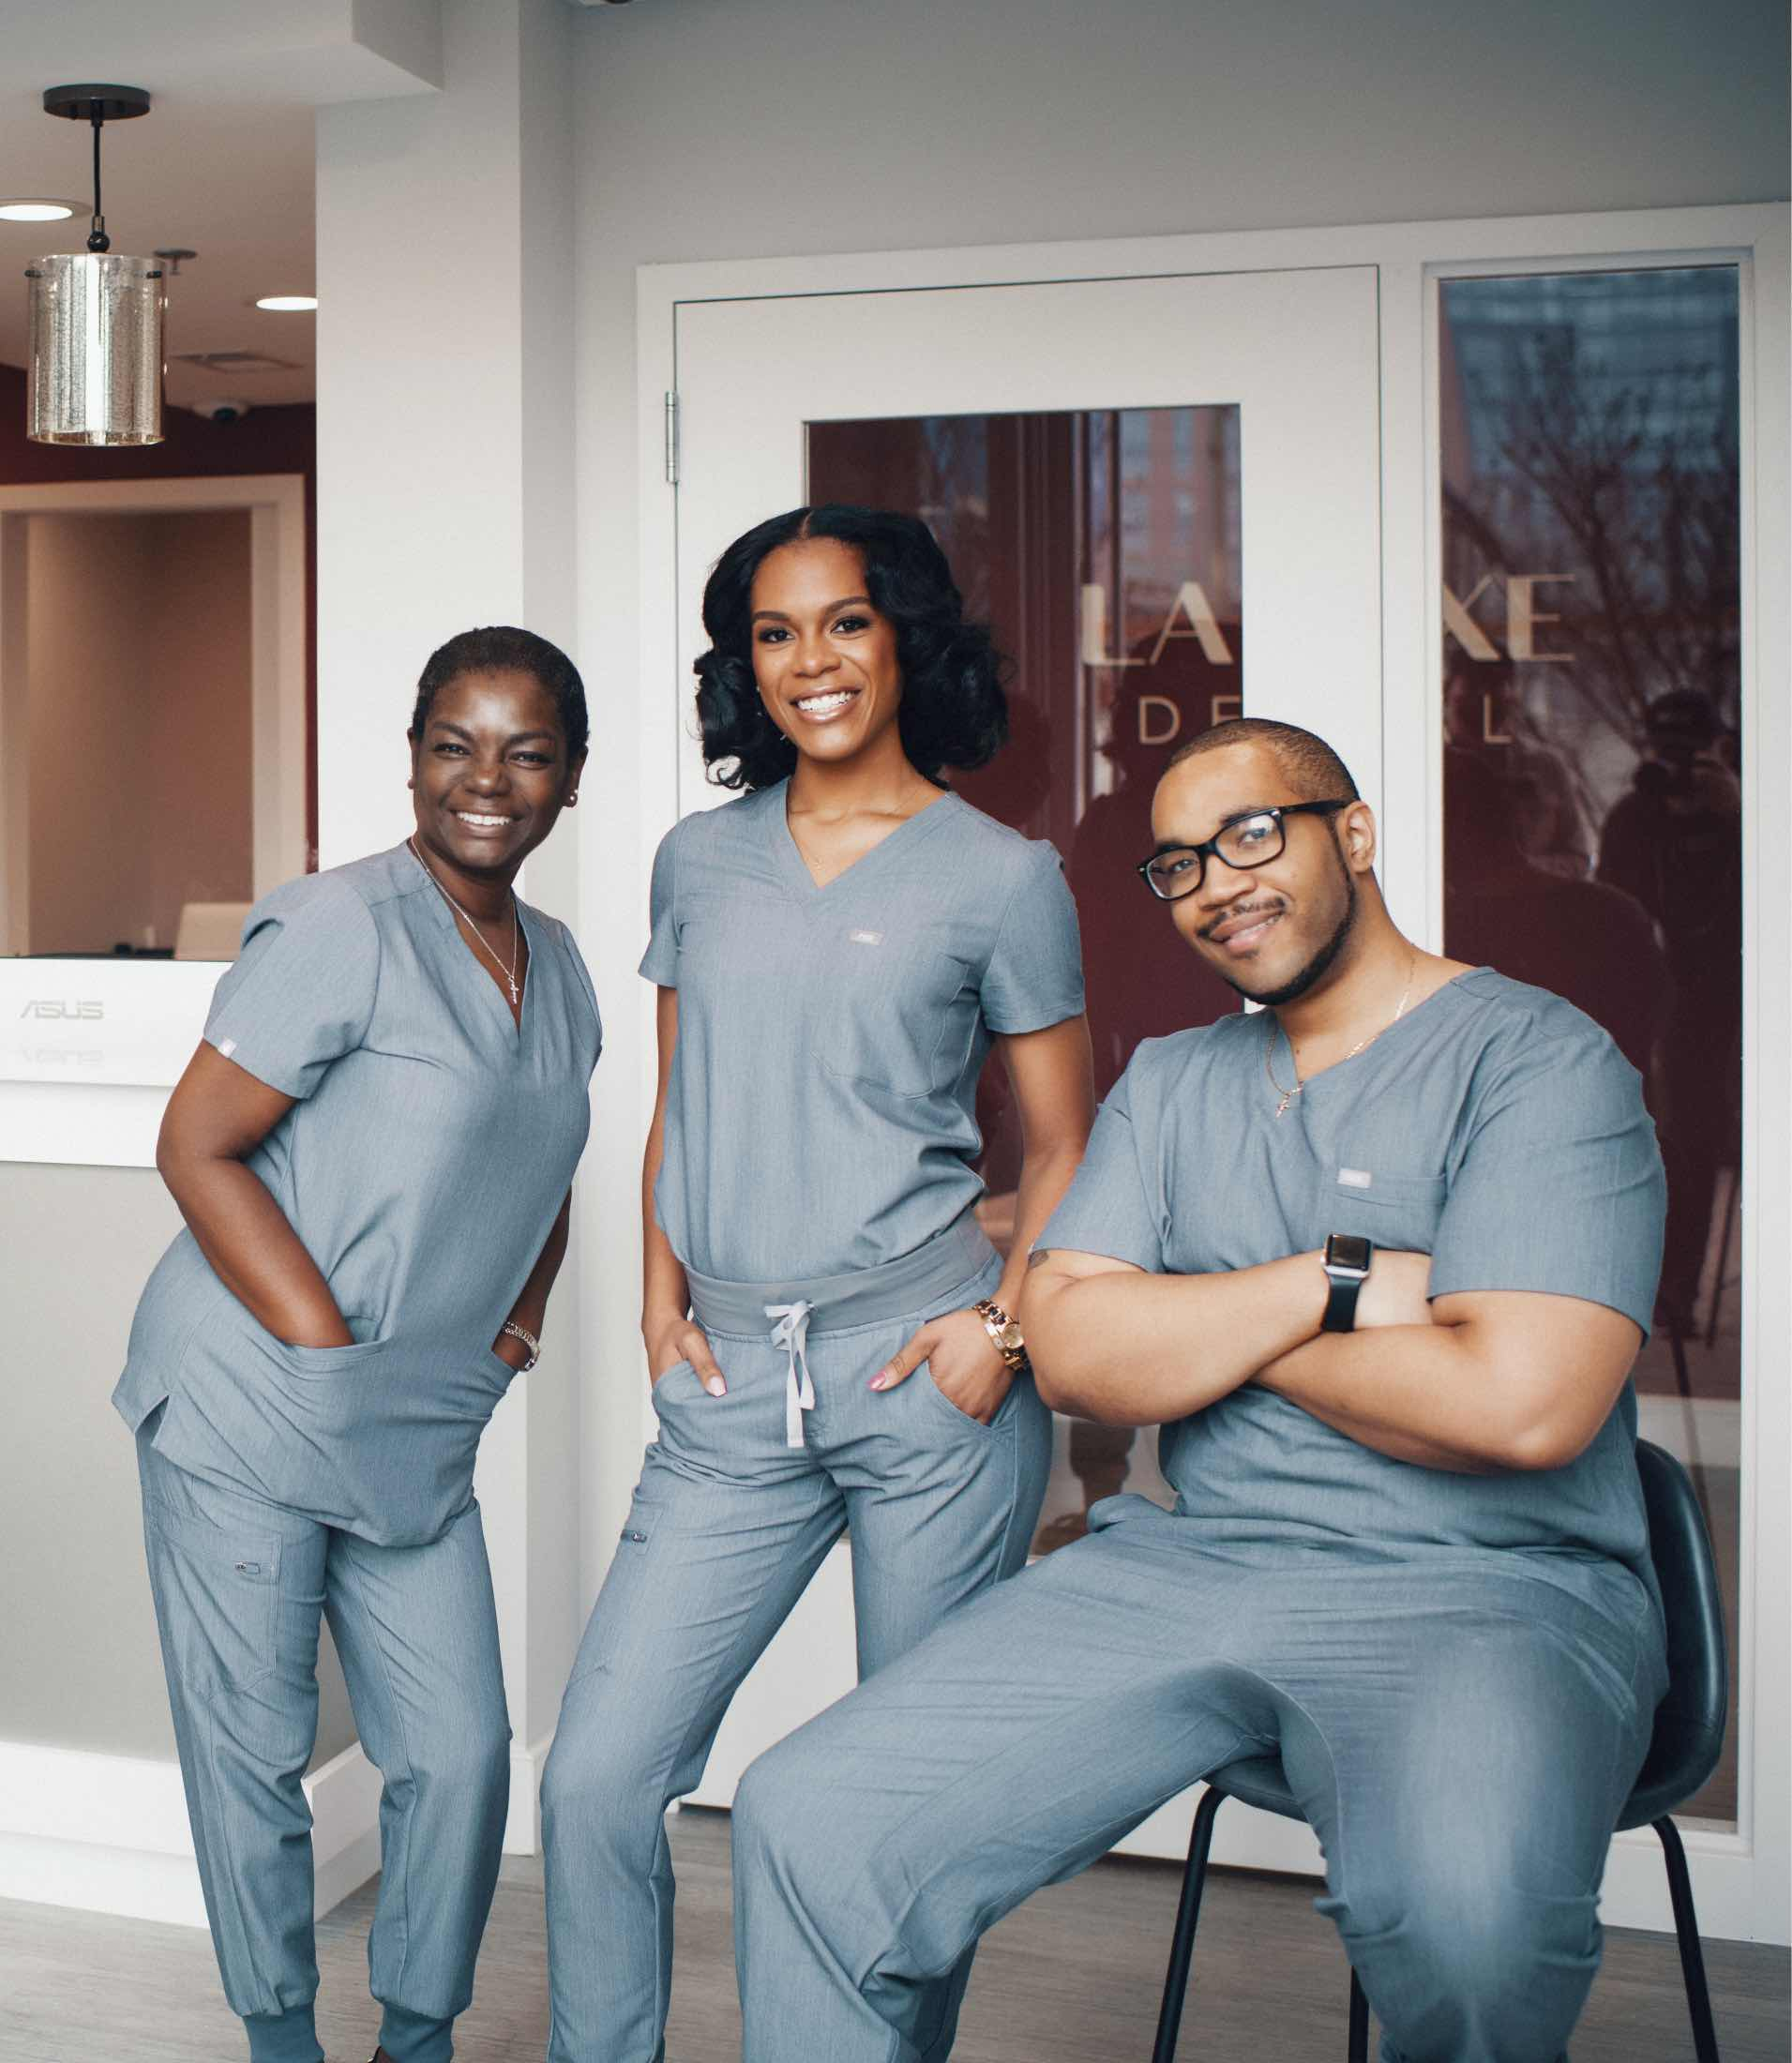 Photo of the La Luxe Dental team